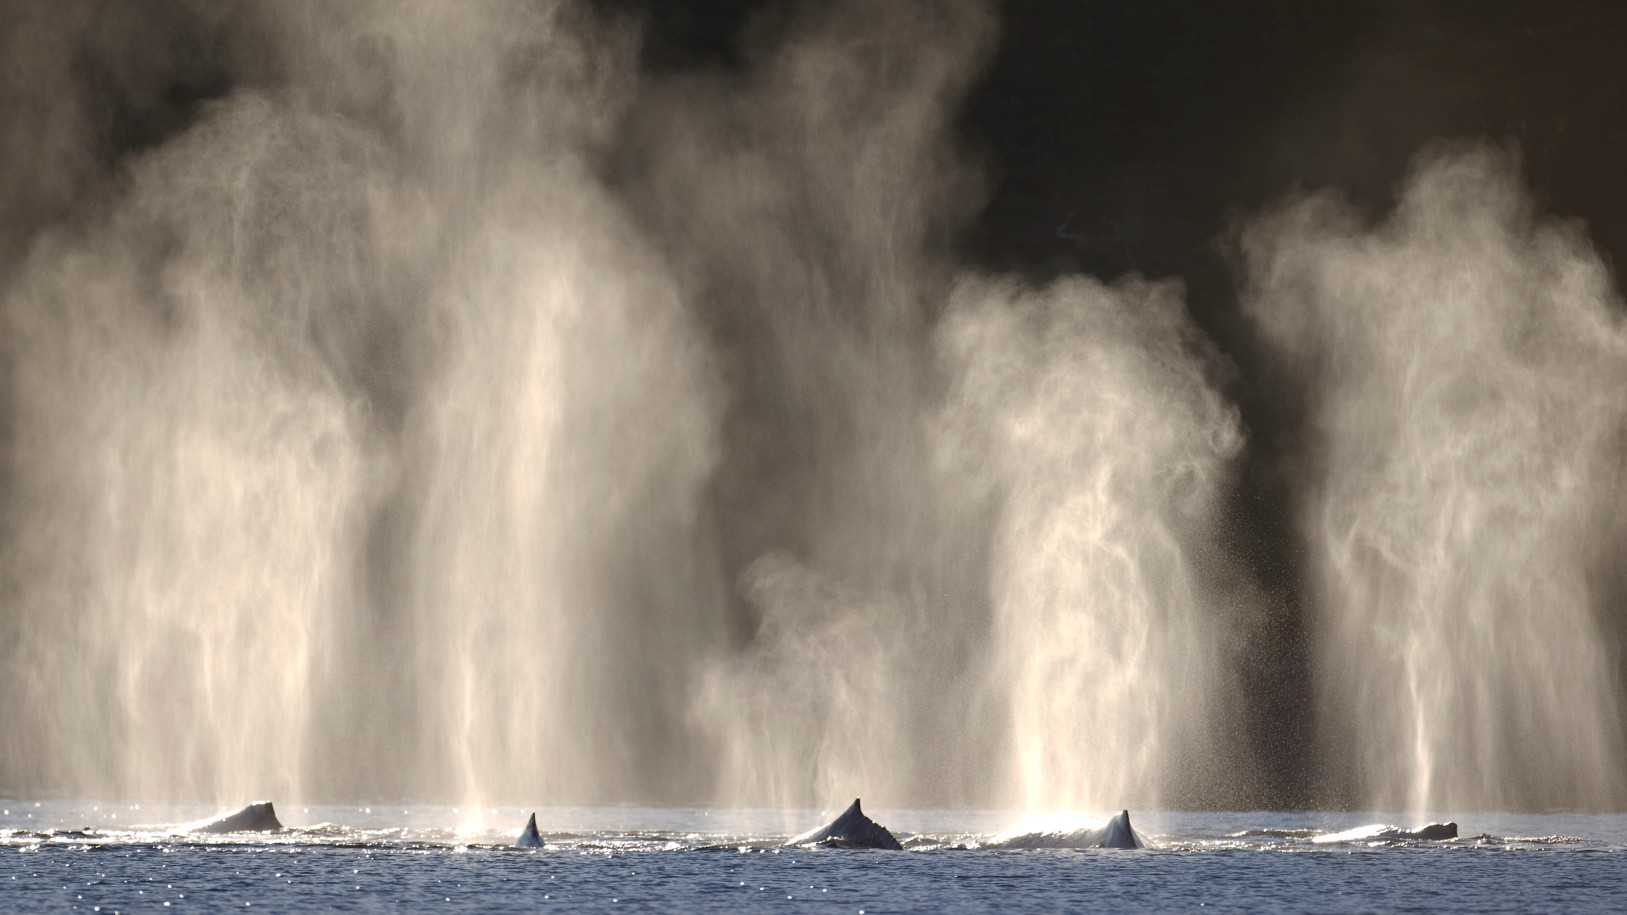 Humpback whales are seen in a file photo. (iStock/Getty Images Plus)